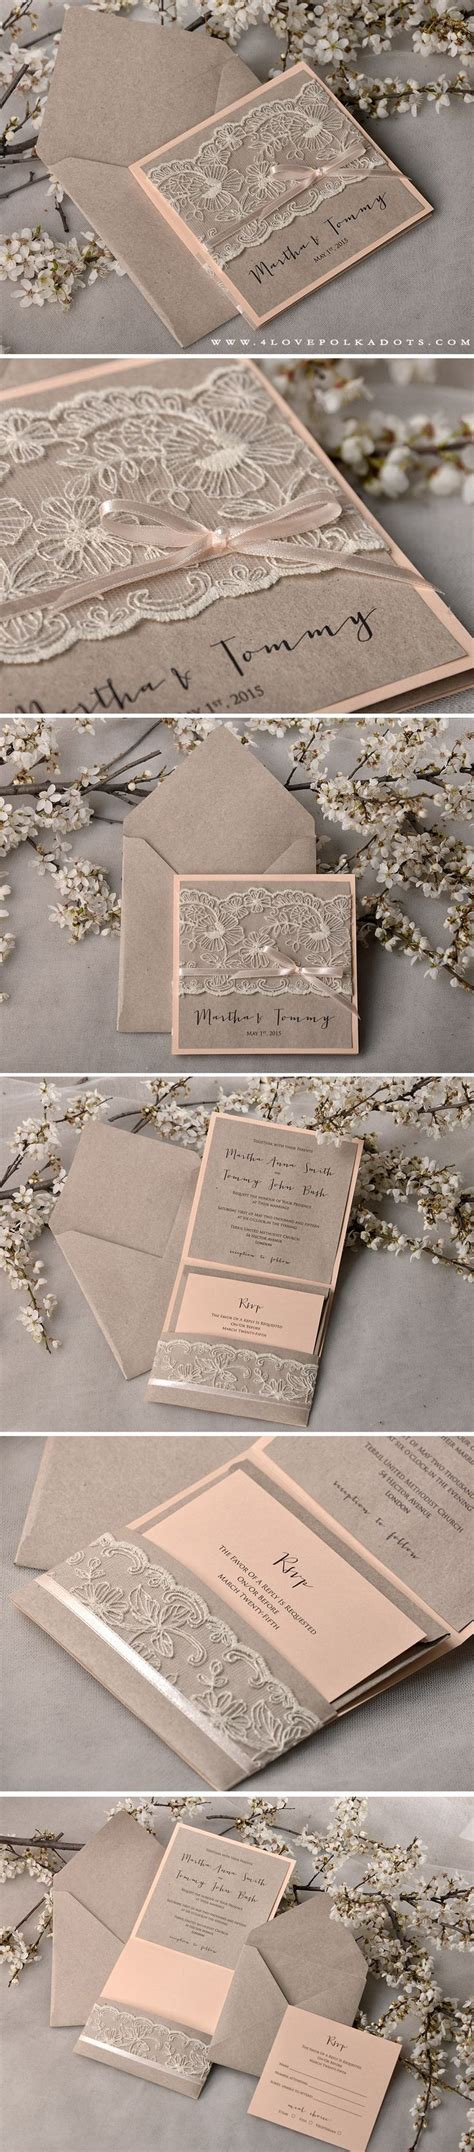 Wedding Invitations Handmade Ideas - 25 best ideas about handmade wedding invitations on